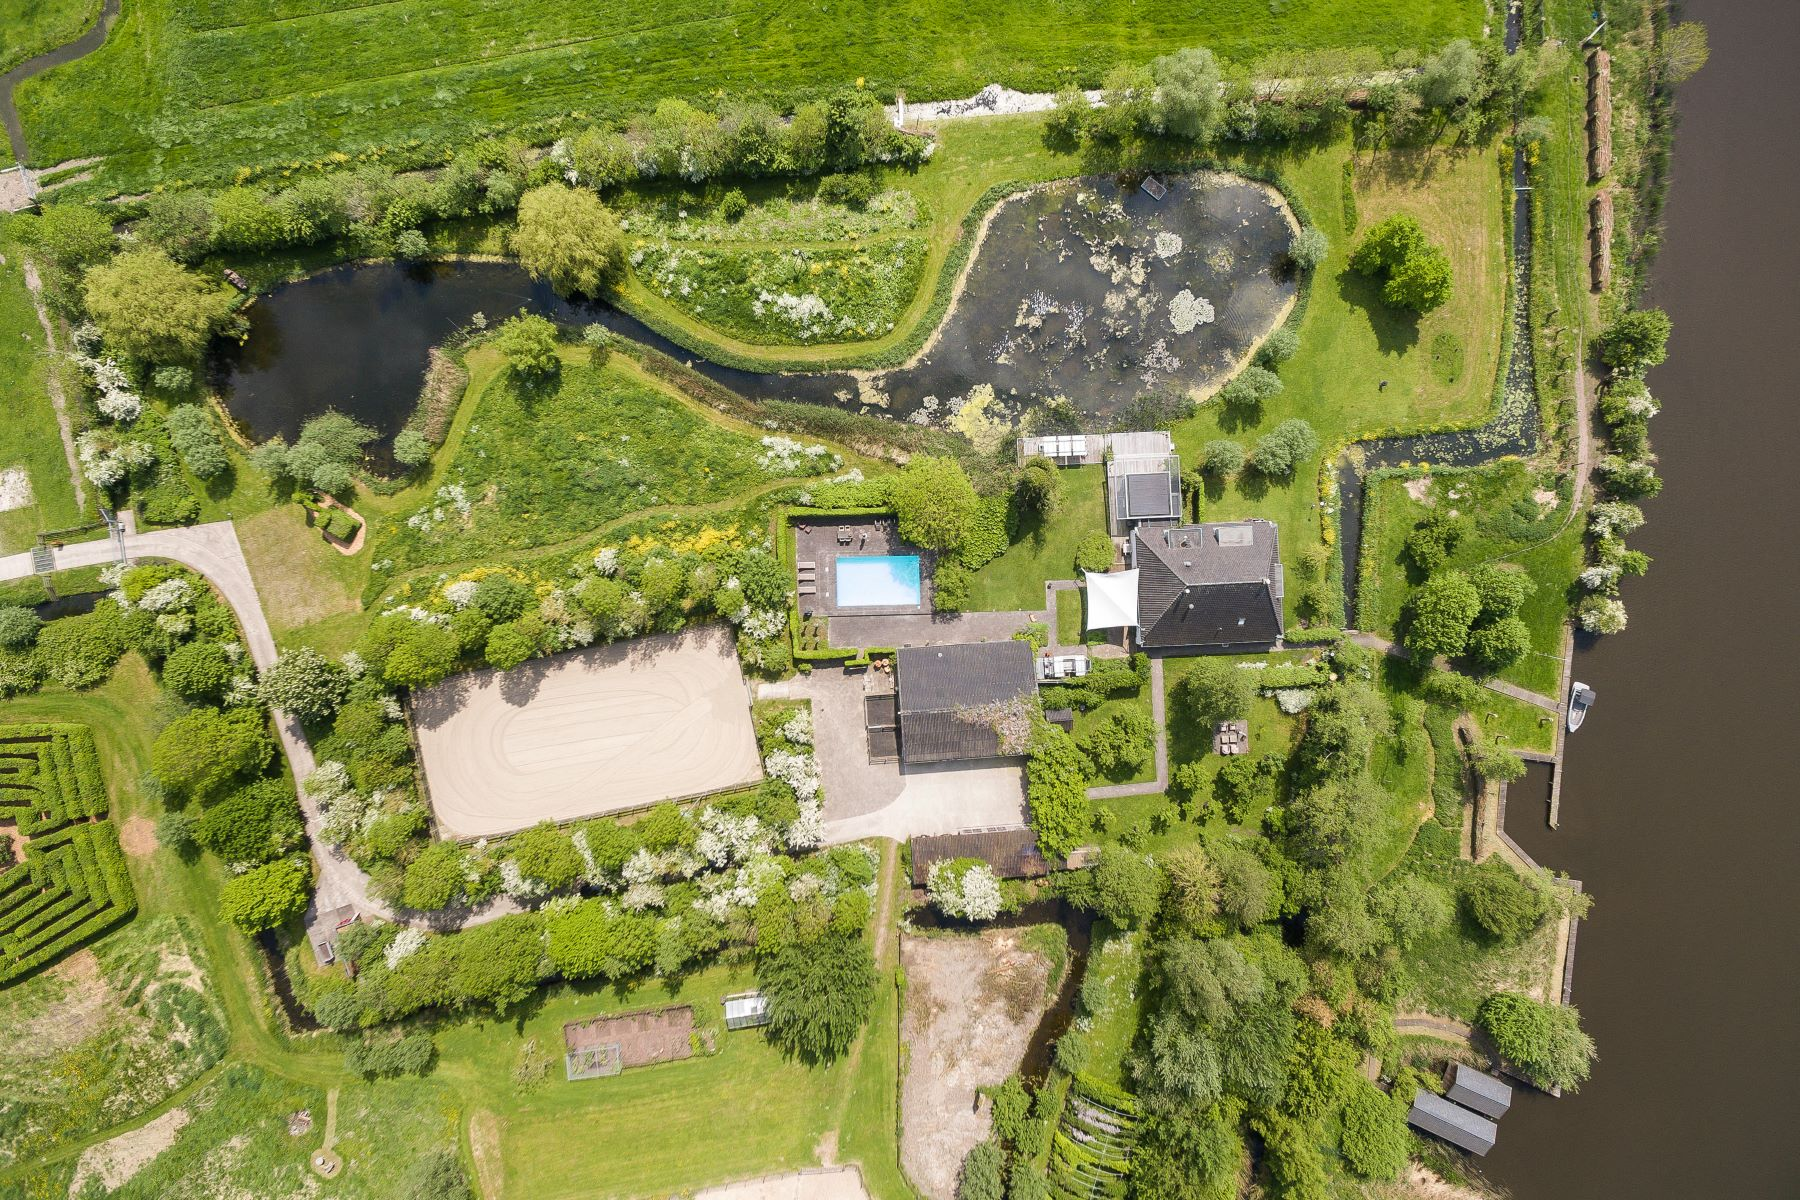 Single Family Home for Active at Private sale Other North Holland, North Holland Netherlands